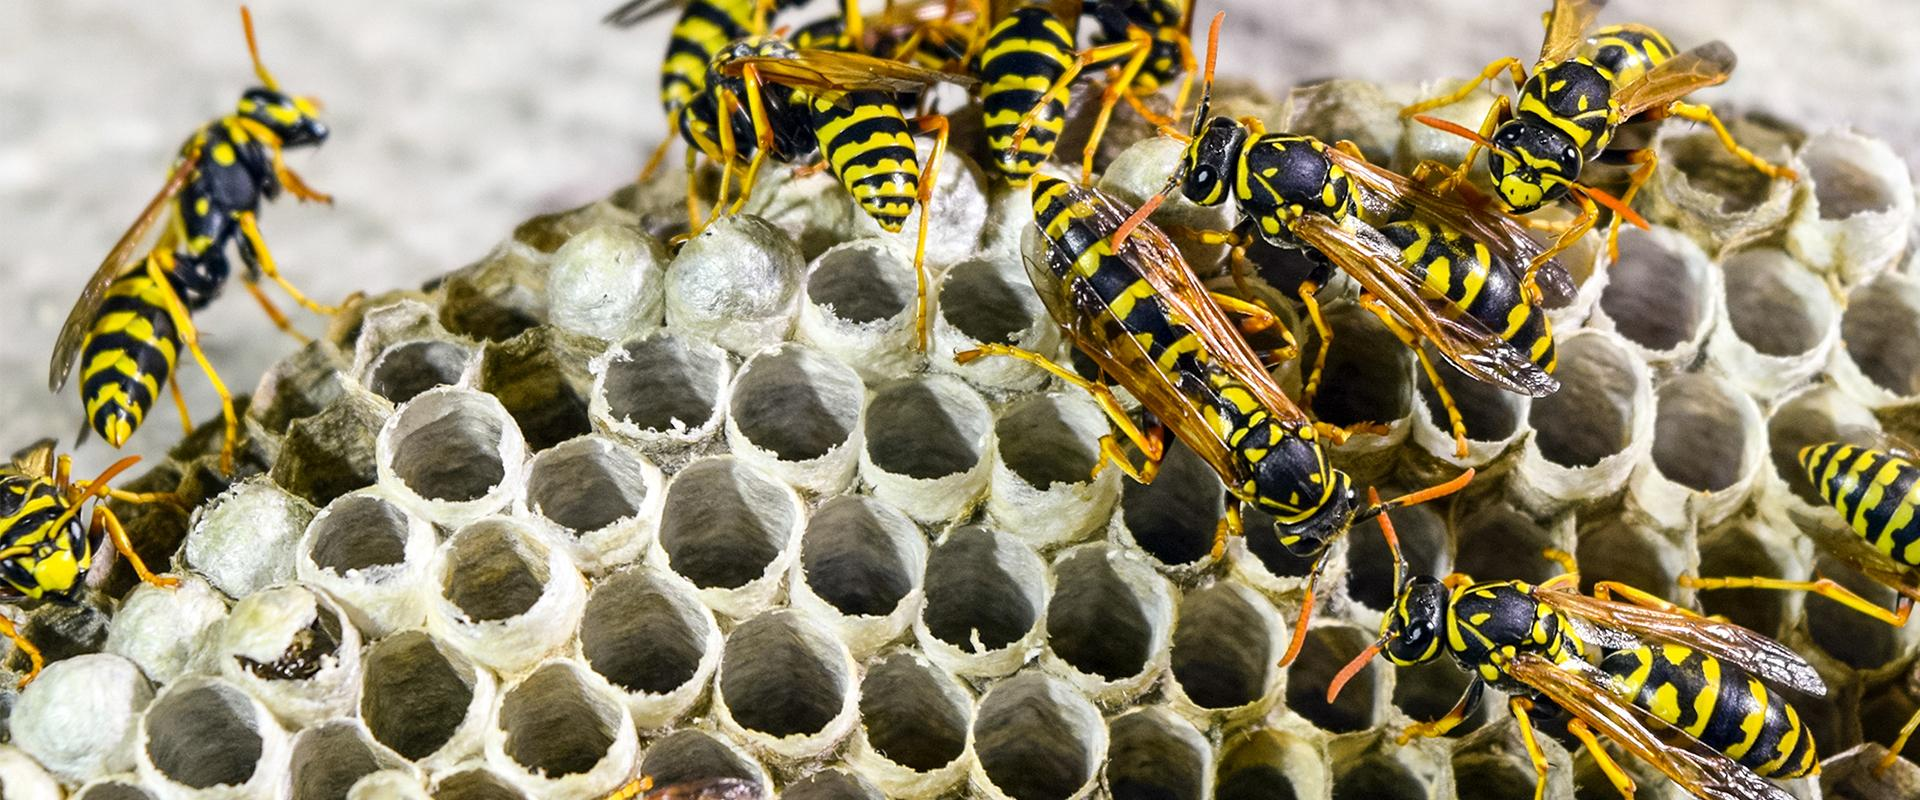 many wasps building a nest